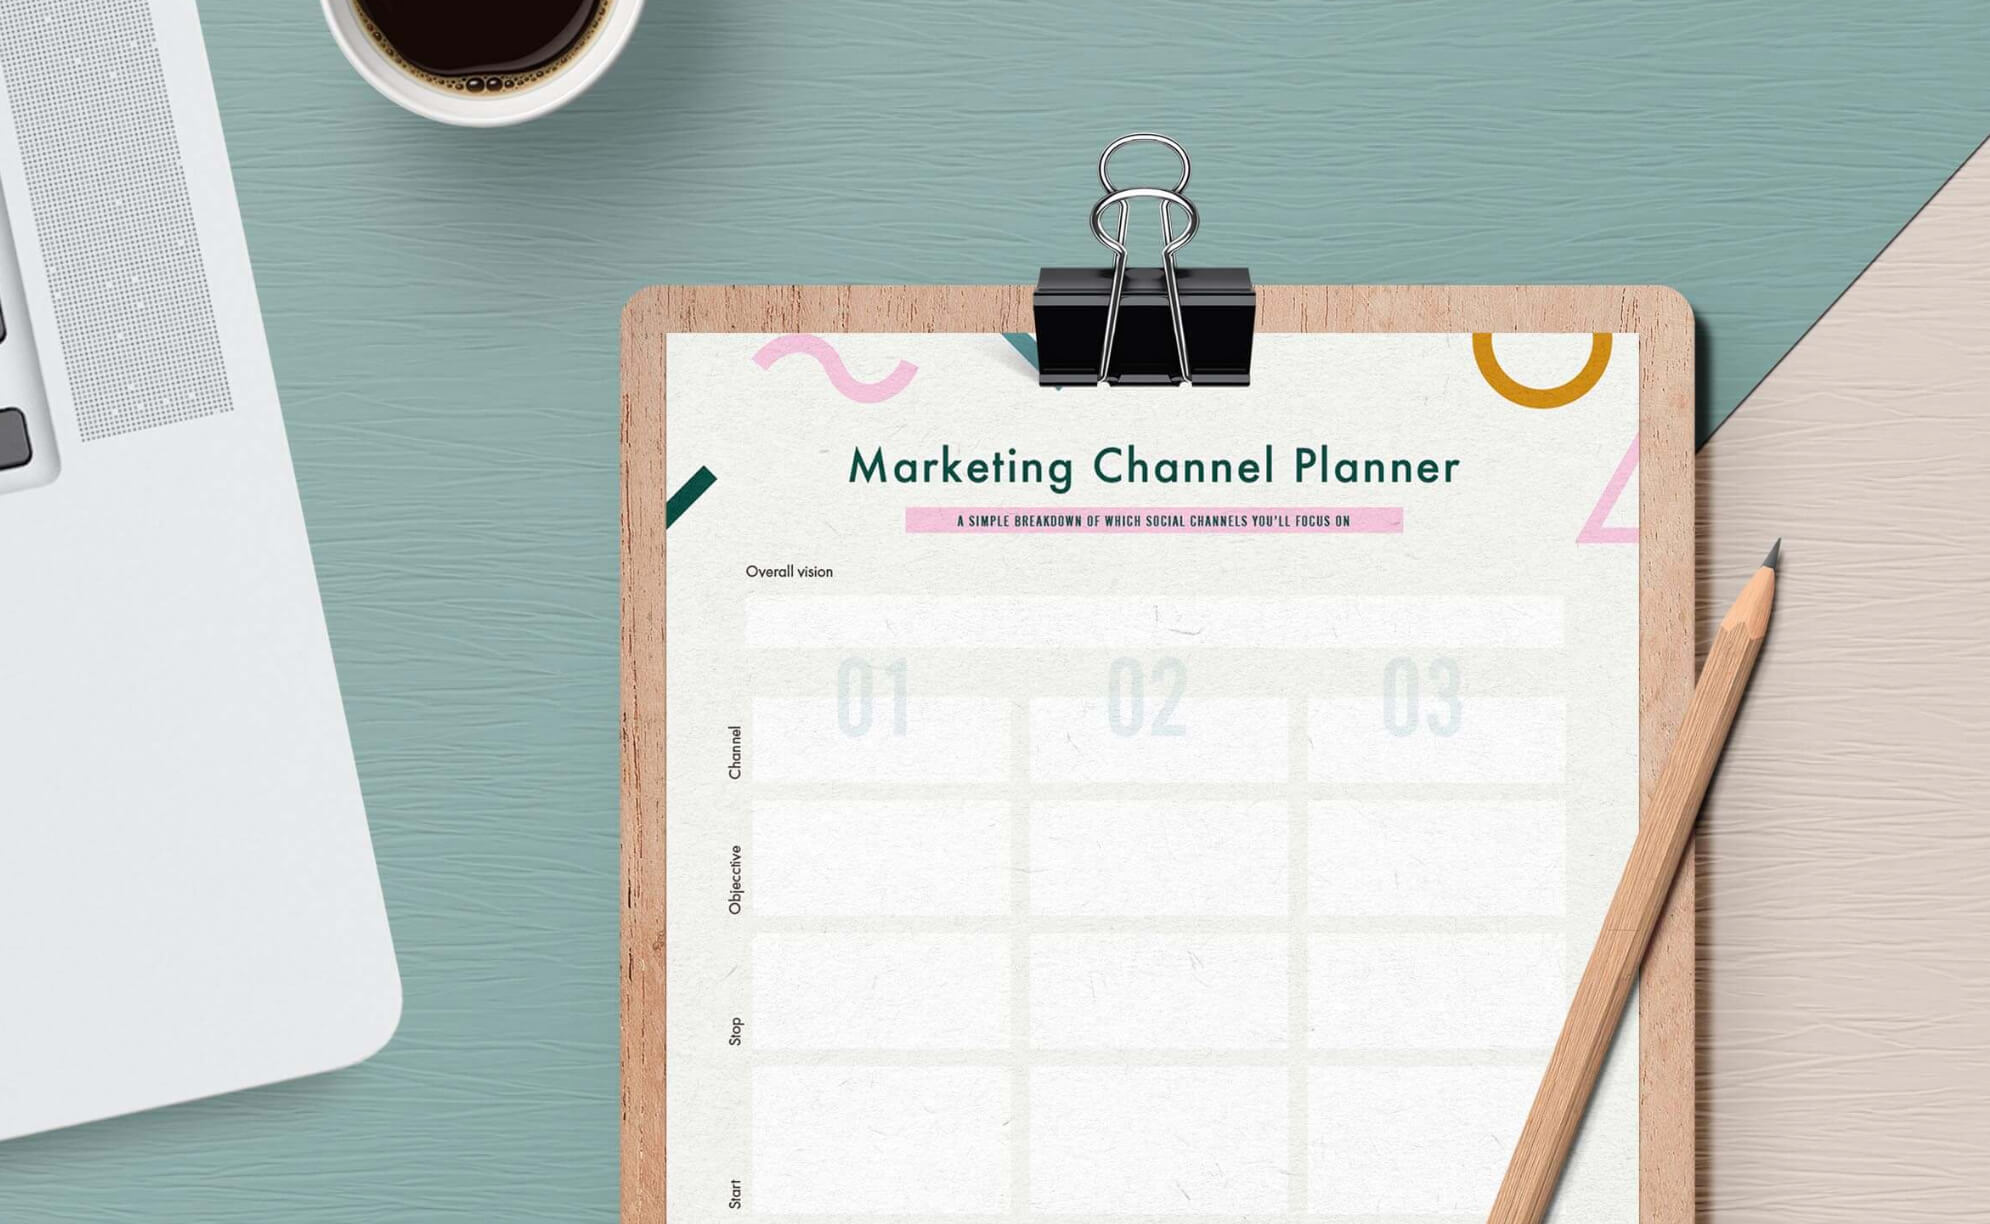 Marketing Channel Planner